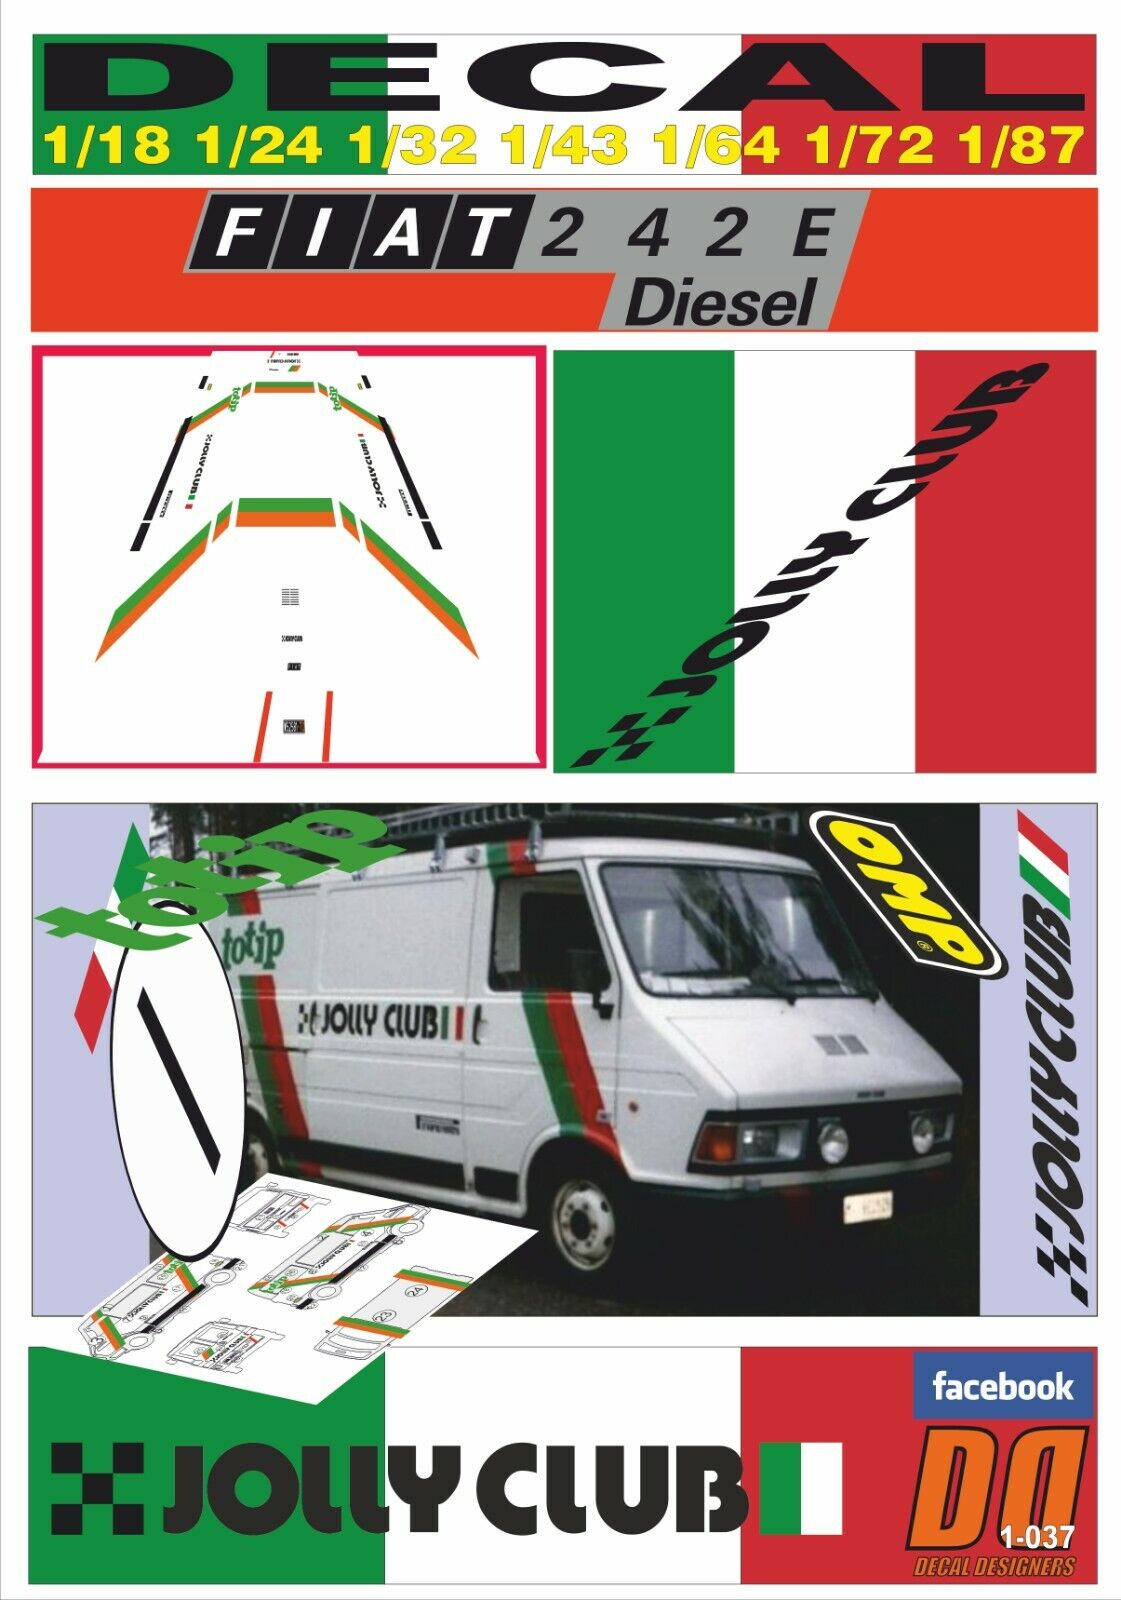 DECAL FIAT 242 E ASSISTENZA TOTIP JOLLY CLUB 1984 (06)